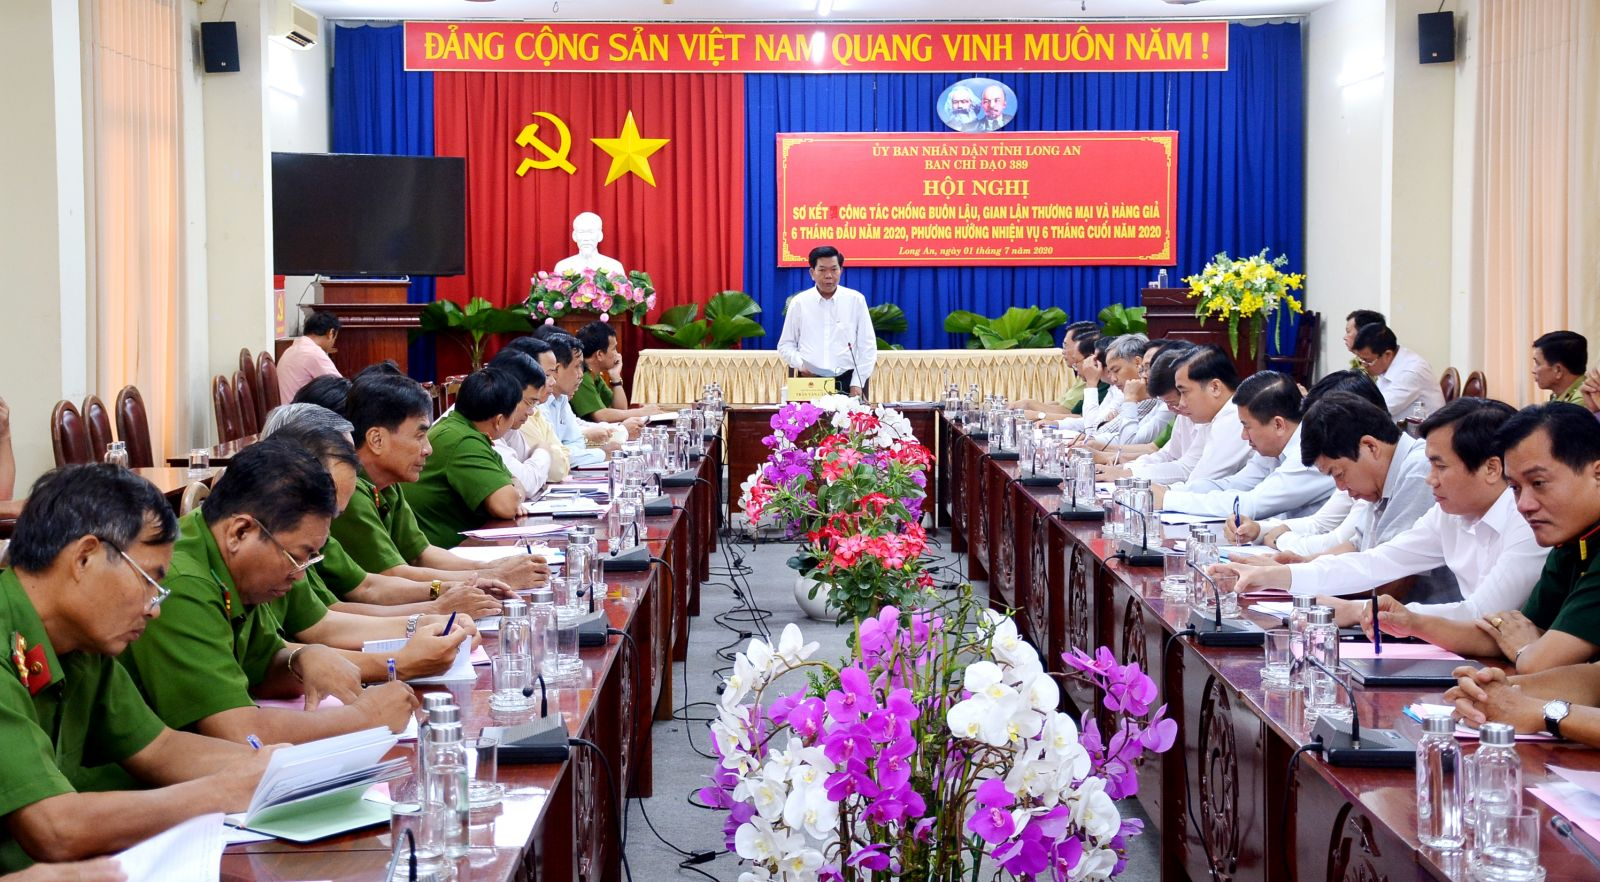 Chairman of Provincial People's Committee, Head of Provincial Steering Committee 389 - Tran Van Can chairs the conference